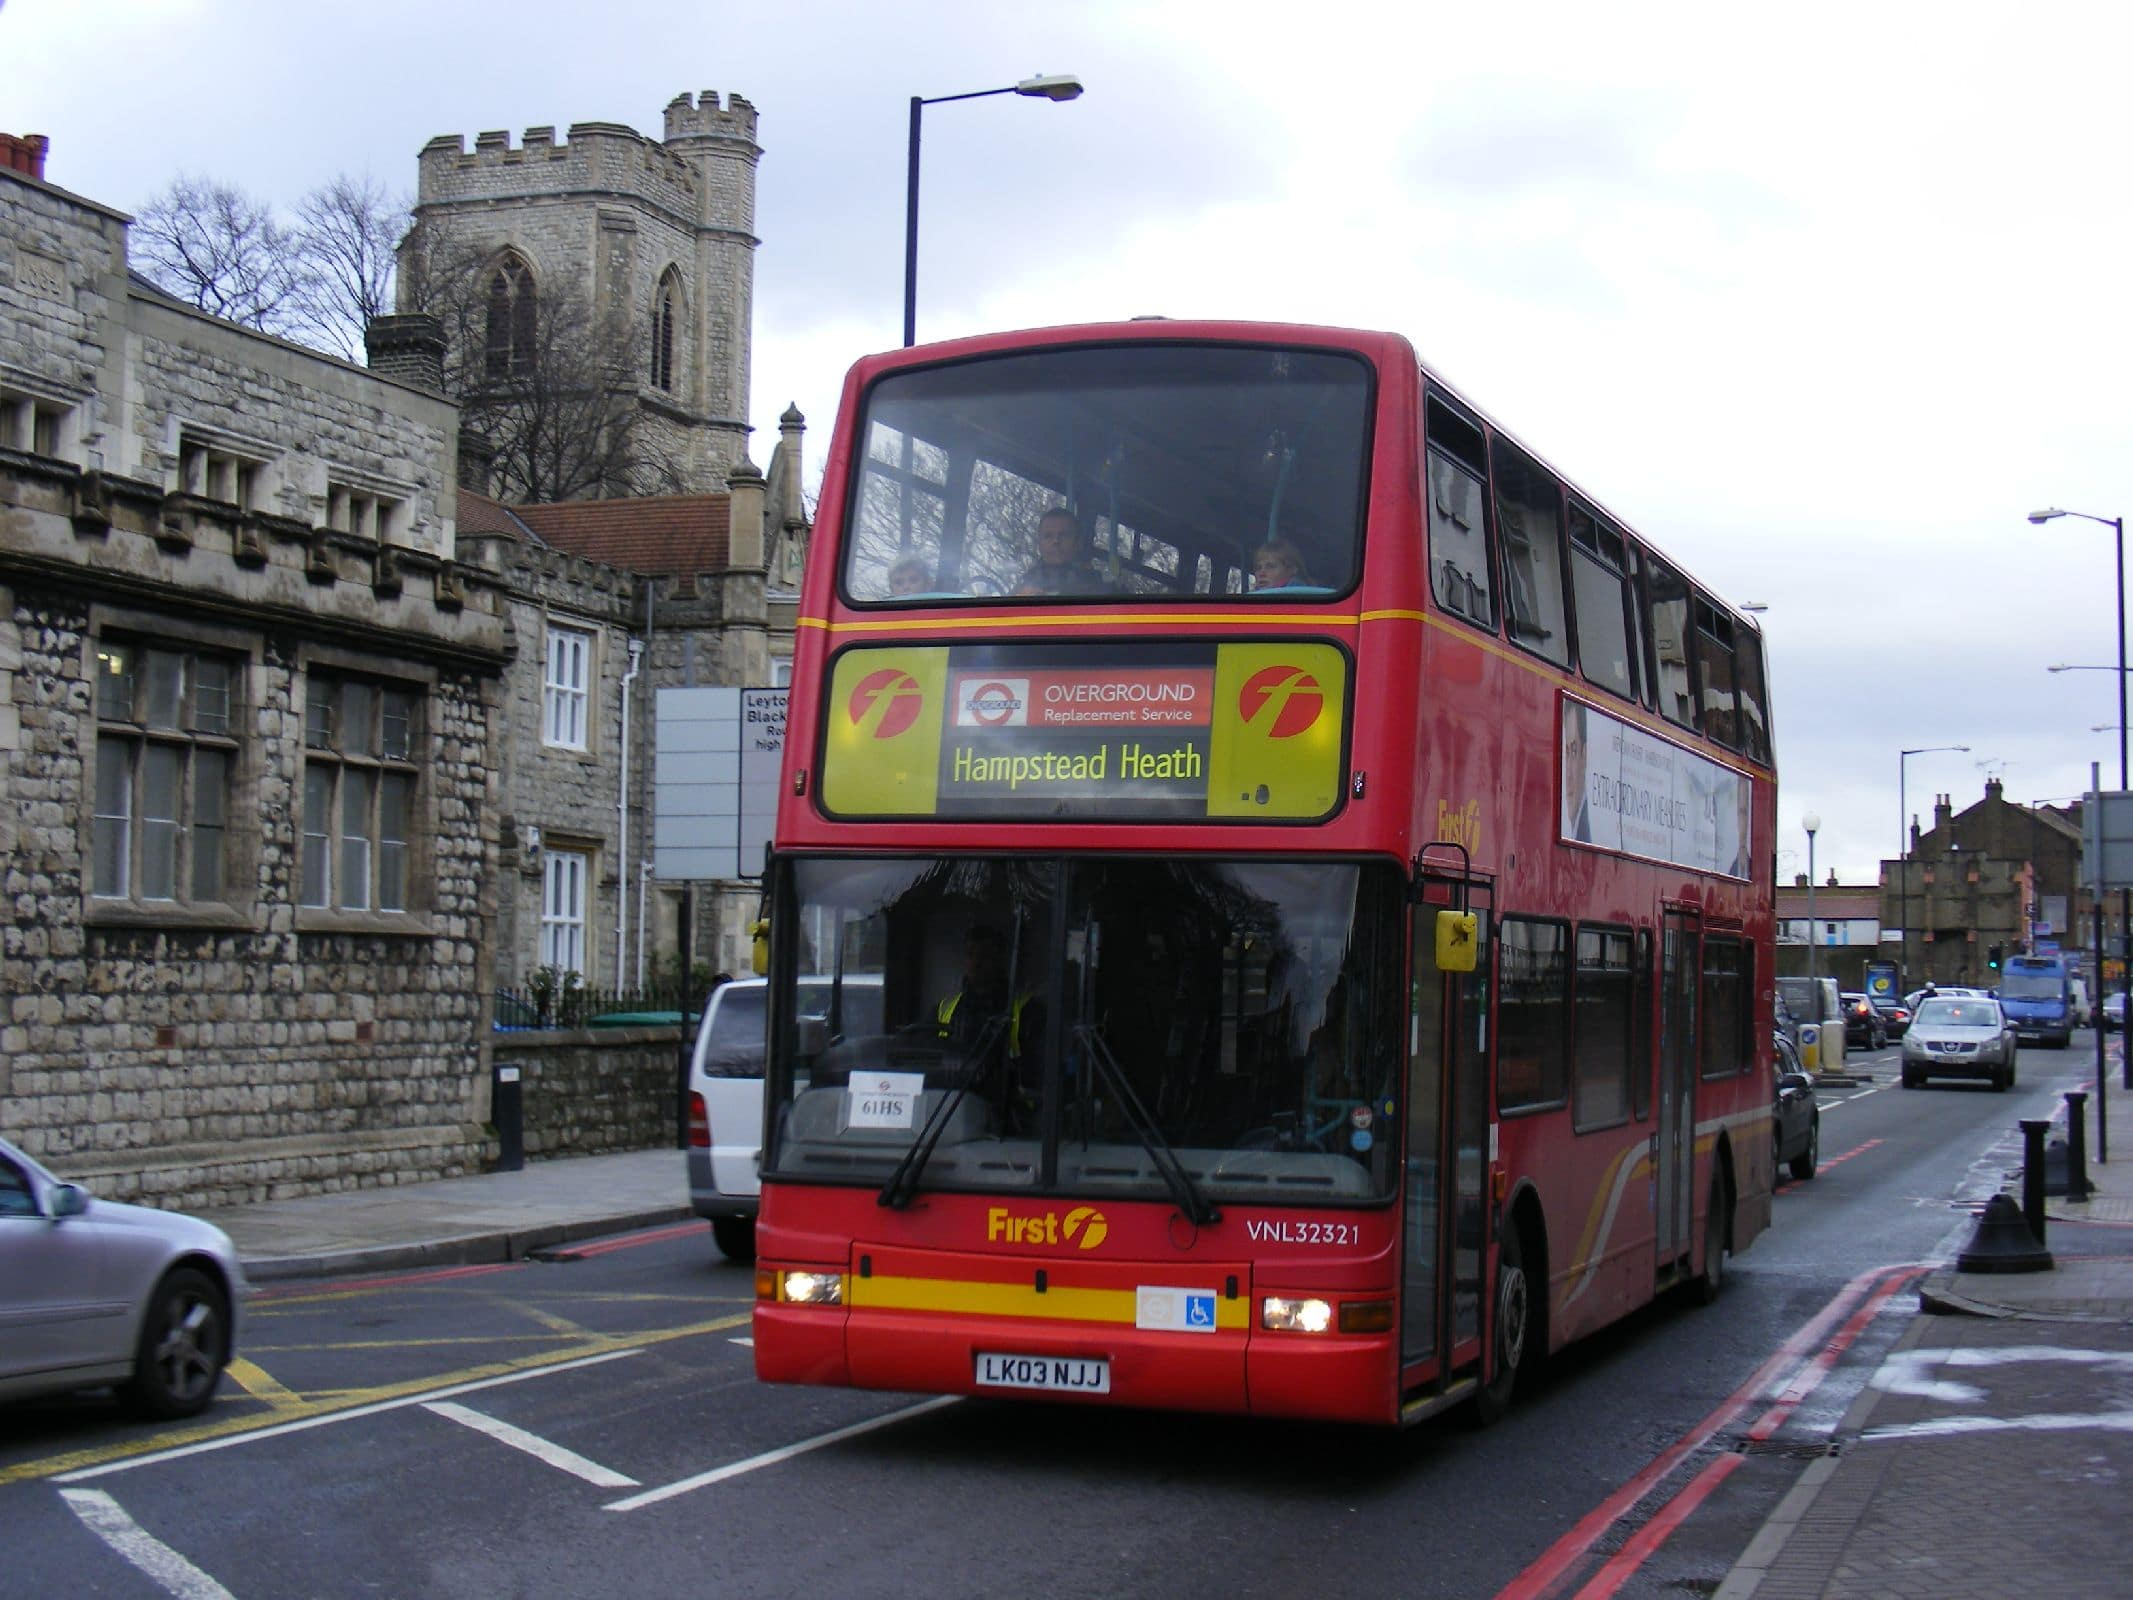 Bus - North London IT support